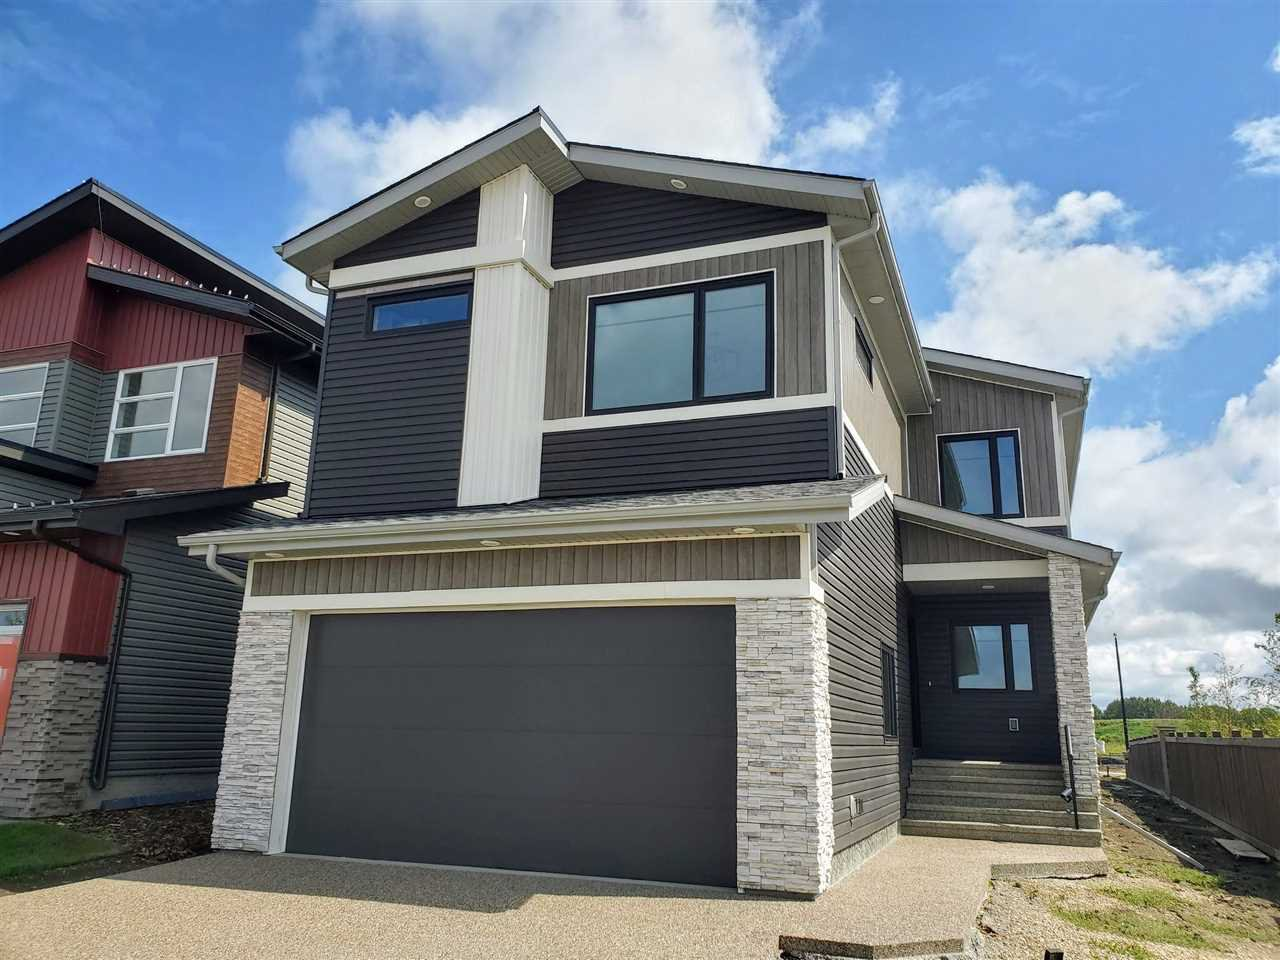 Main Photo: 2 Elwyck Gate: Spruce Grove House for sale : MLS®# E4181708